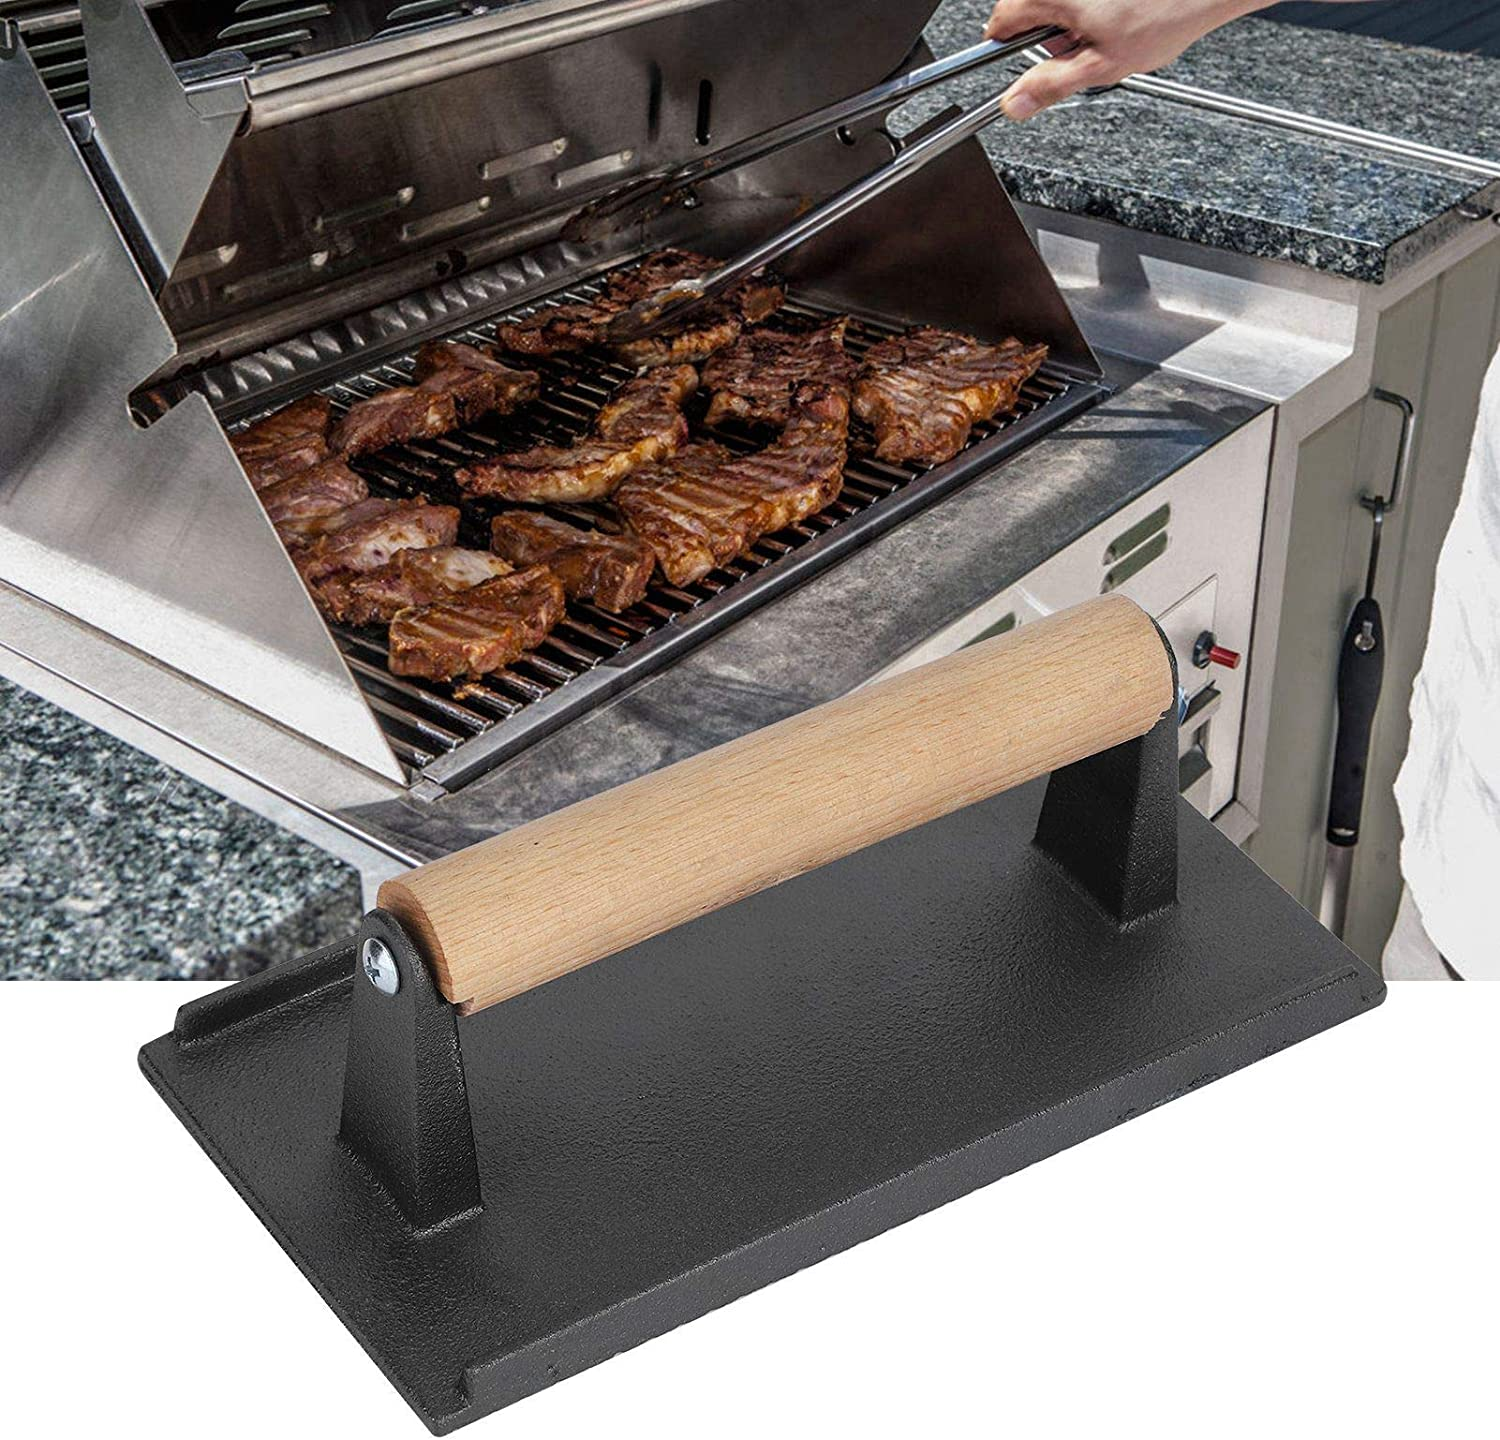 Iron Grill Press Ergonomic To Use Ma Directly managed store Barbecue Cast New product!! Tools